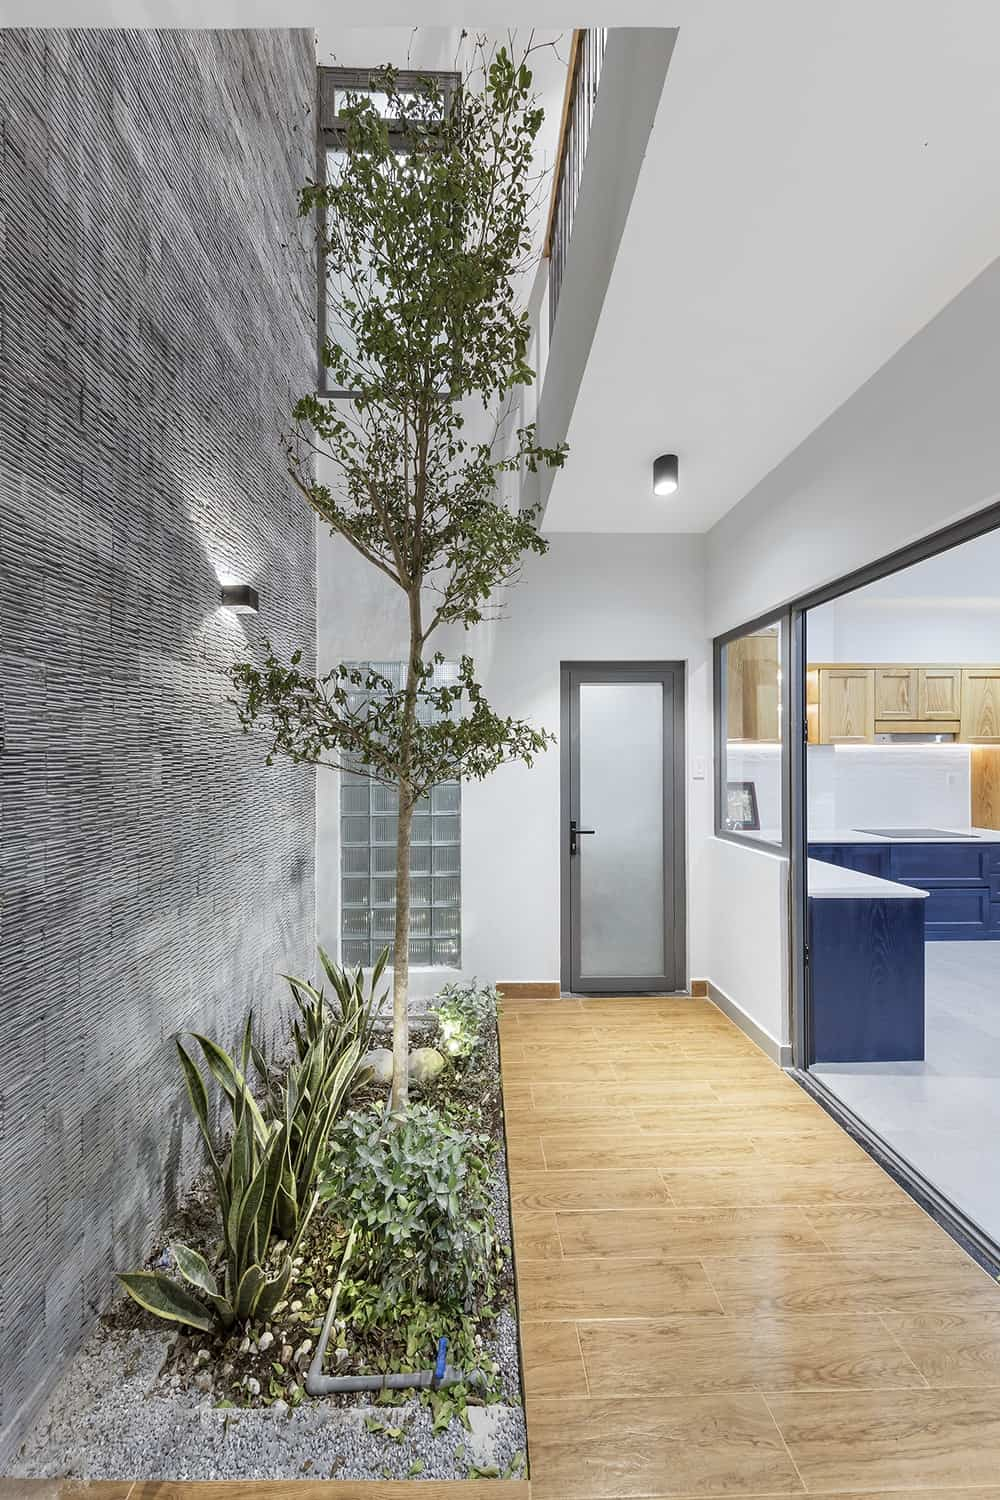 This is a look at the hallway on the side of the kitchen leading from the living room with a glass door, block glass panels, miniature garden on the side and a hardwood flooring that leads to the kitchen through glass doors.